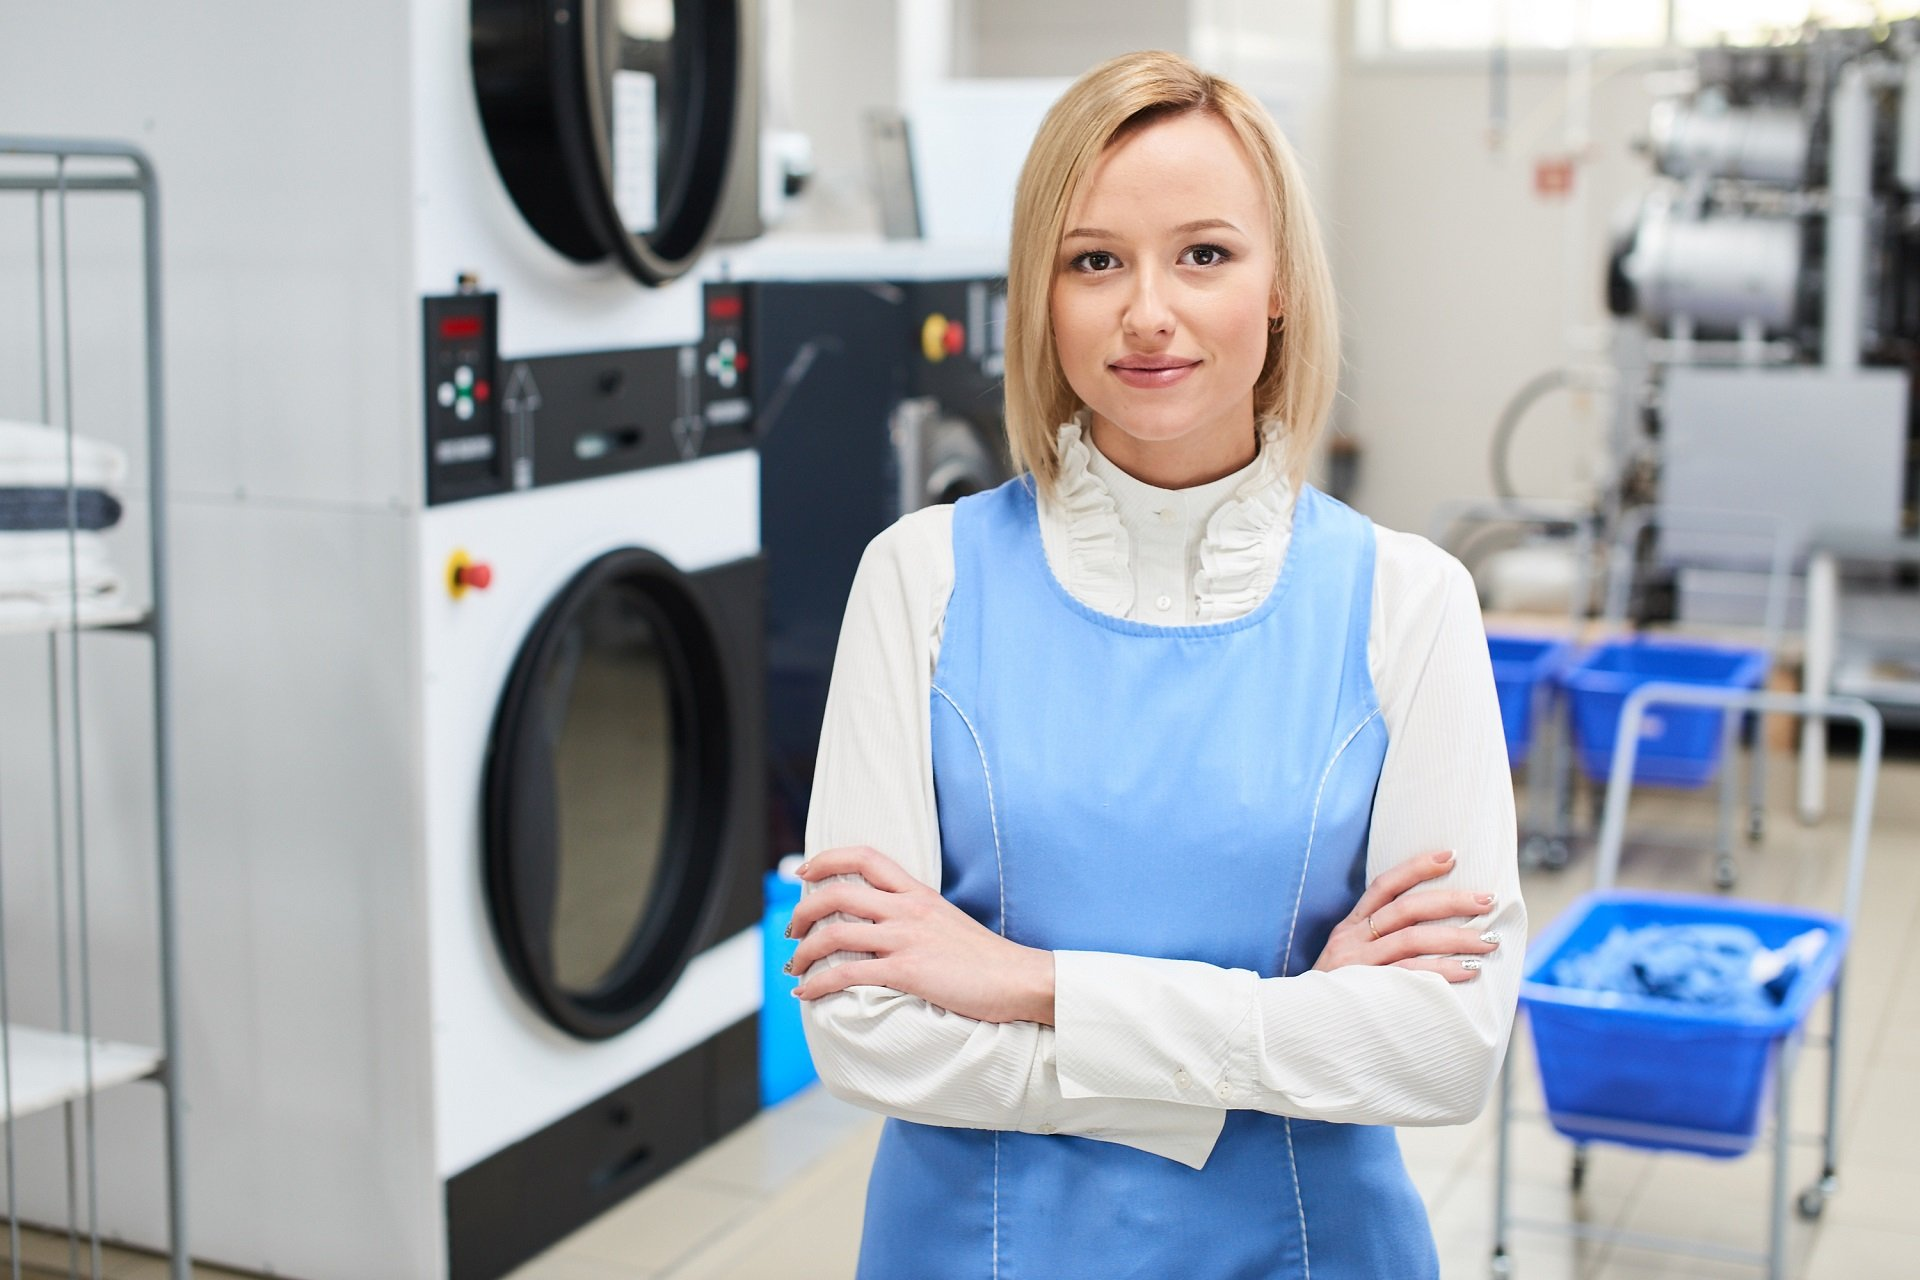 Professional Washing Clothes Services in Miami